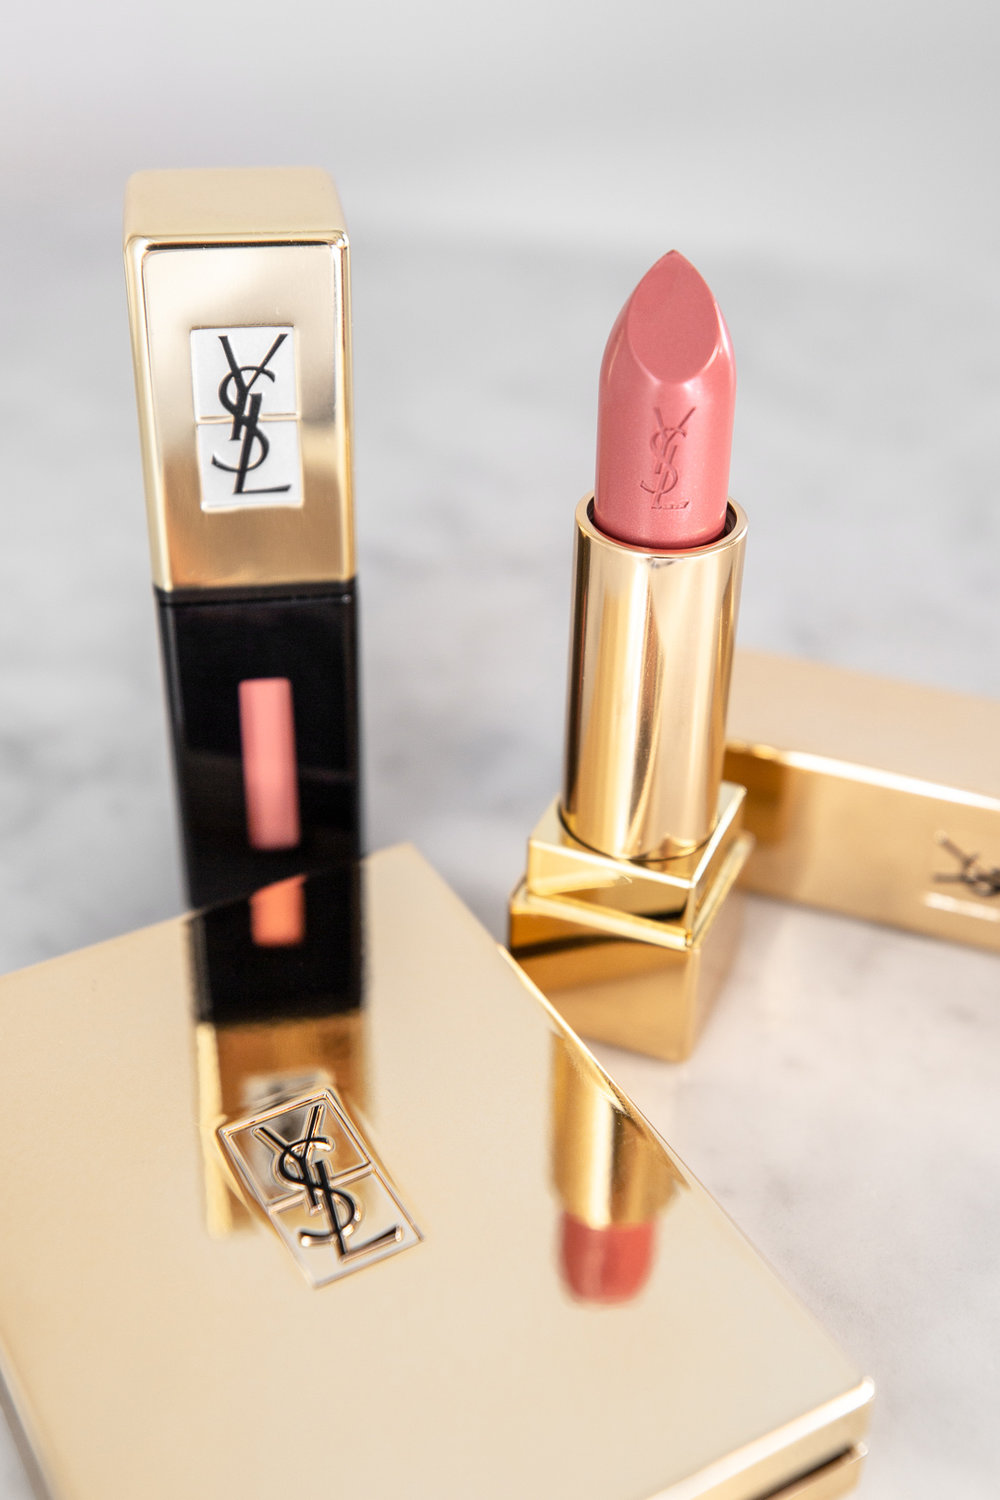 pinterest @woahstyle - my YSL lipstick collection, beauty blog lipsick.me by nathalie martin_6282-2.jpg